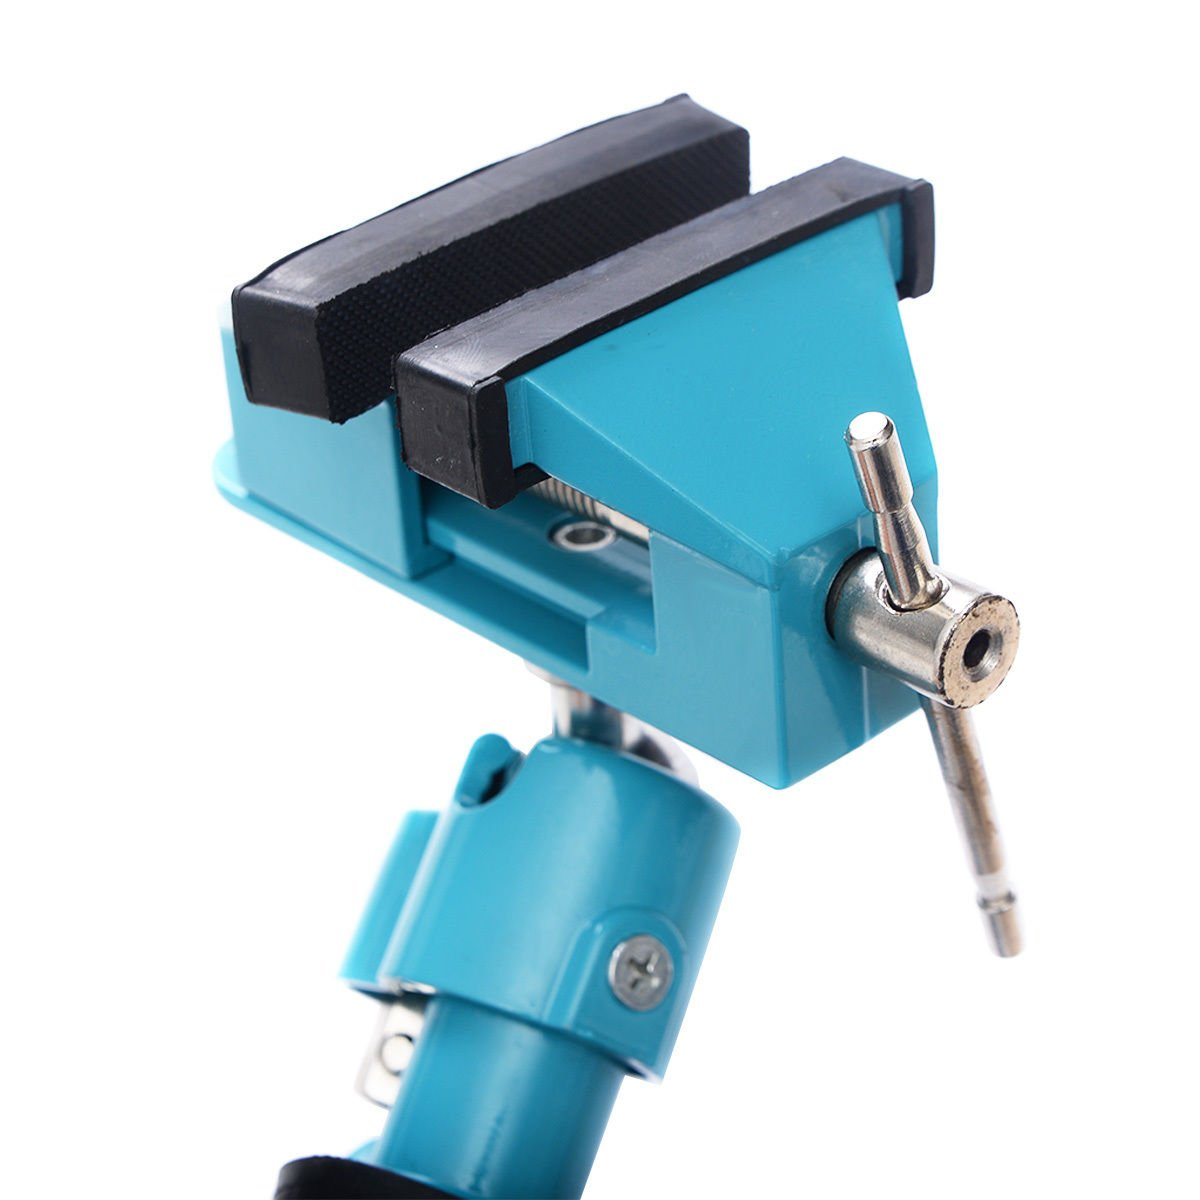 Goplus Bench Vise Swivel 3'' Tabletop Clamp Vice Tilts Rotate 360° Universal Work by Goplus (Image #5)